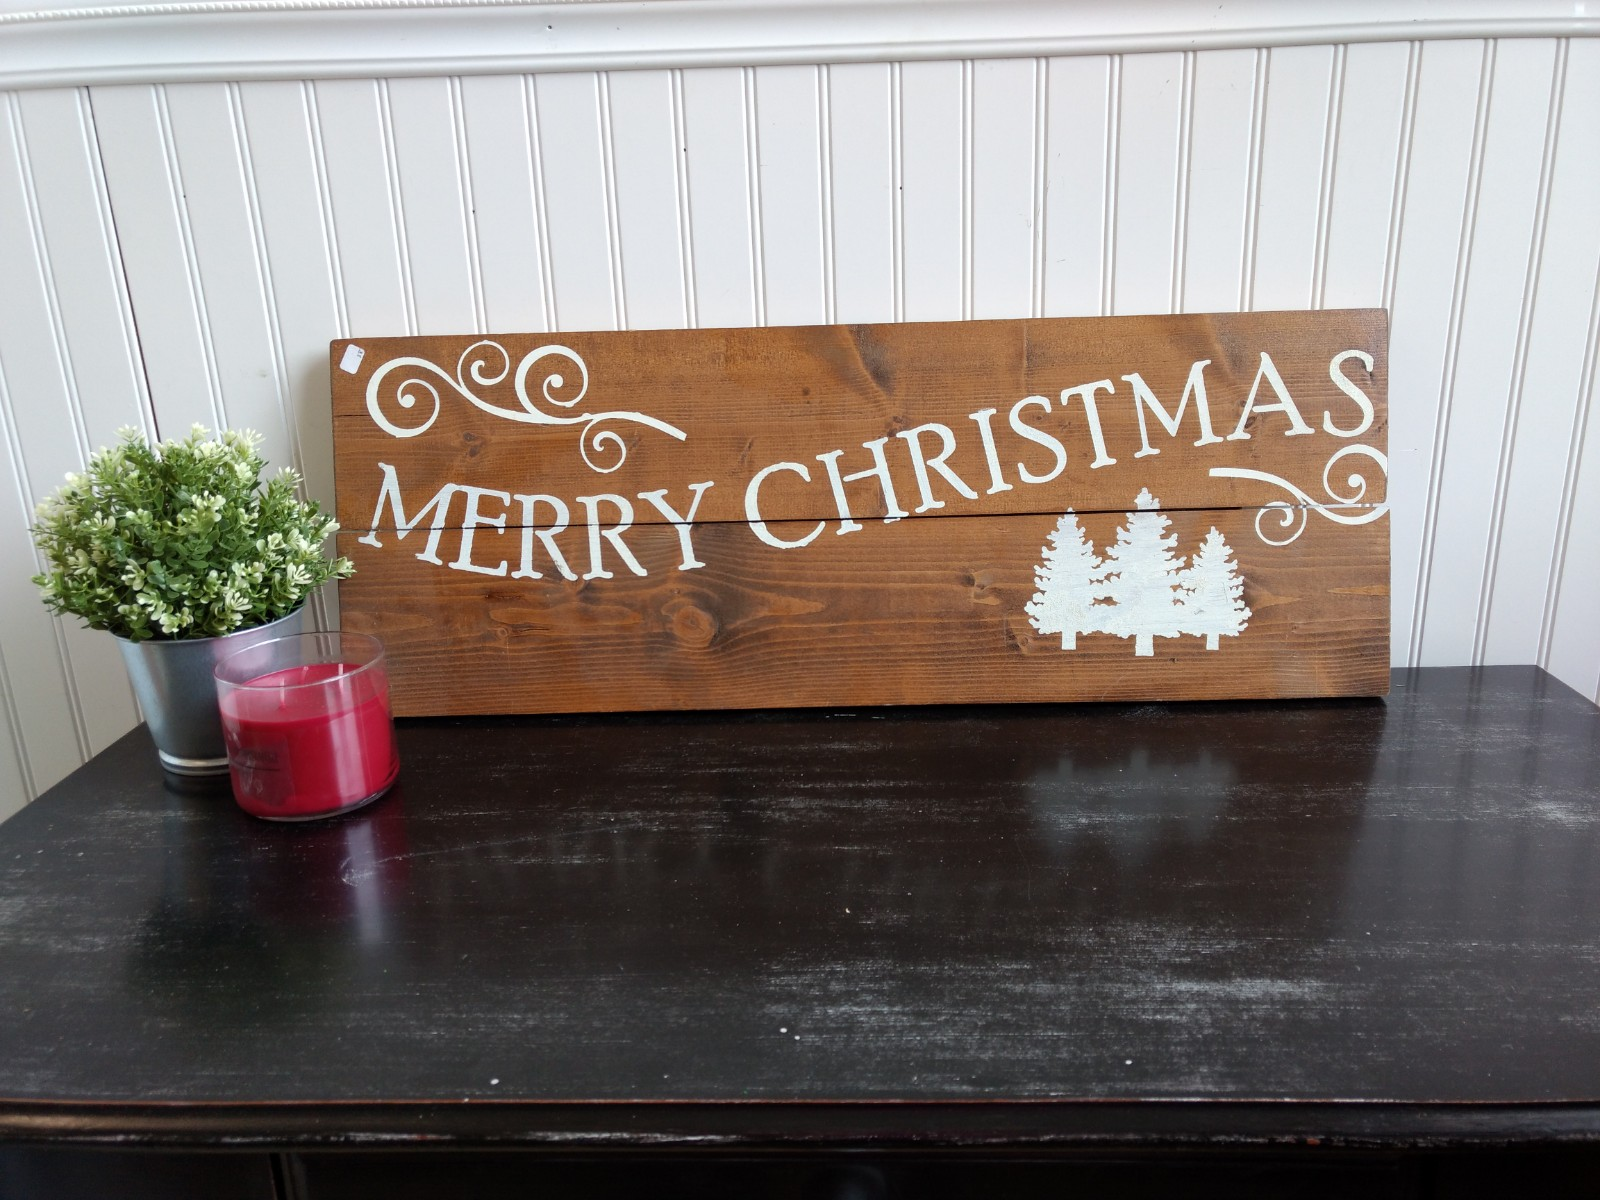 Merry Christmas with Personalized Name